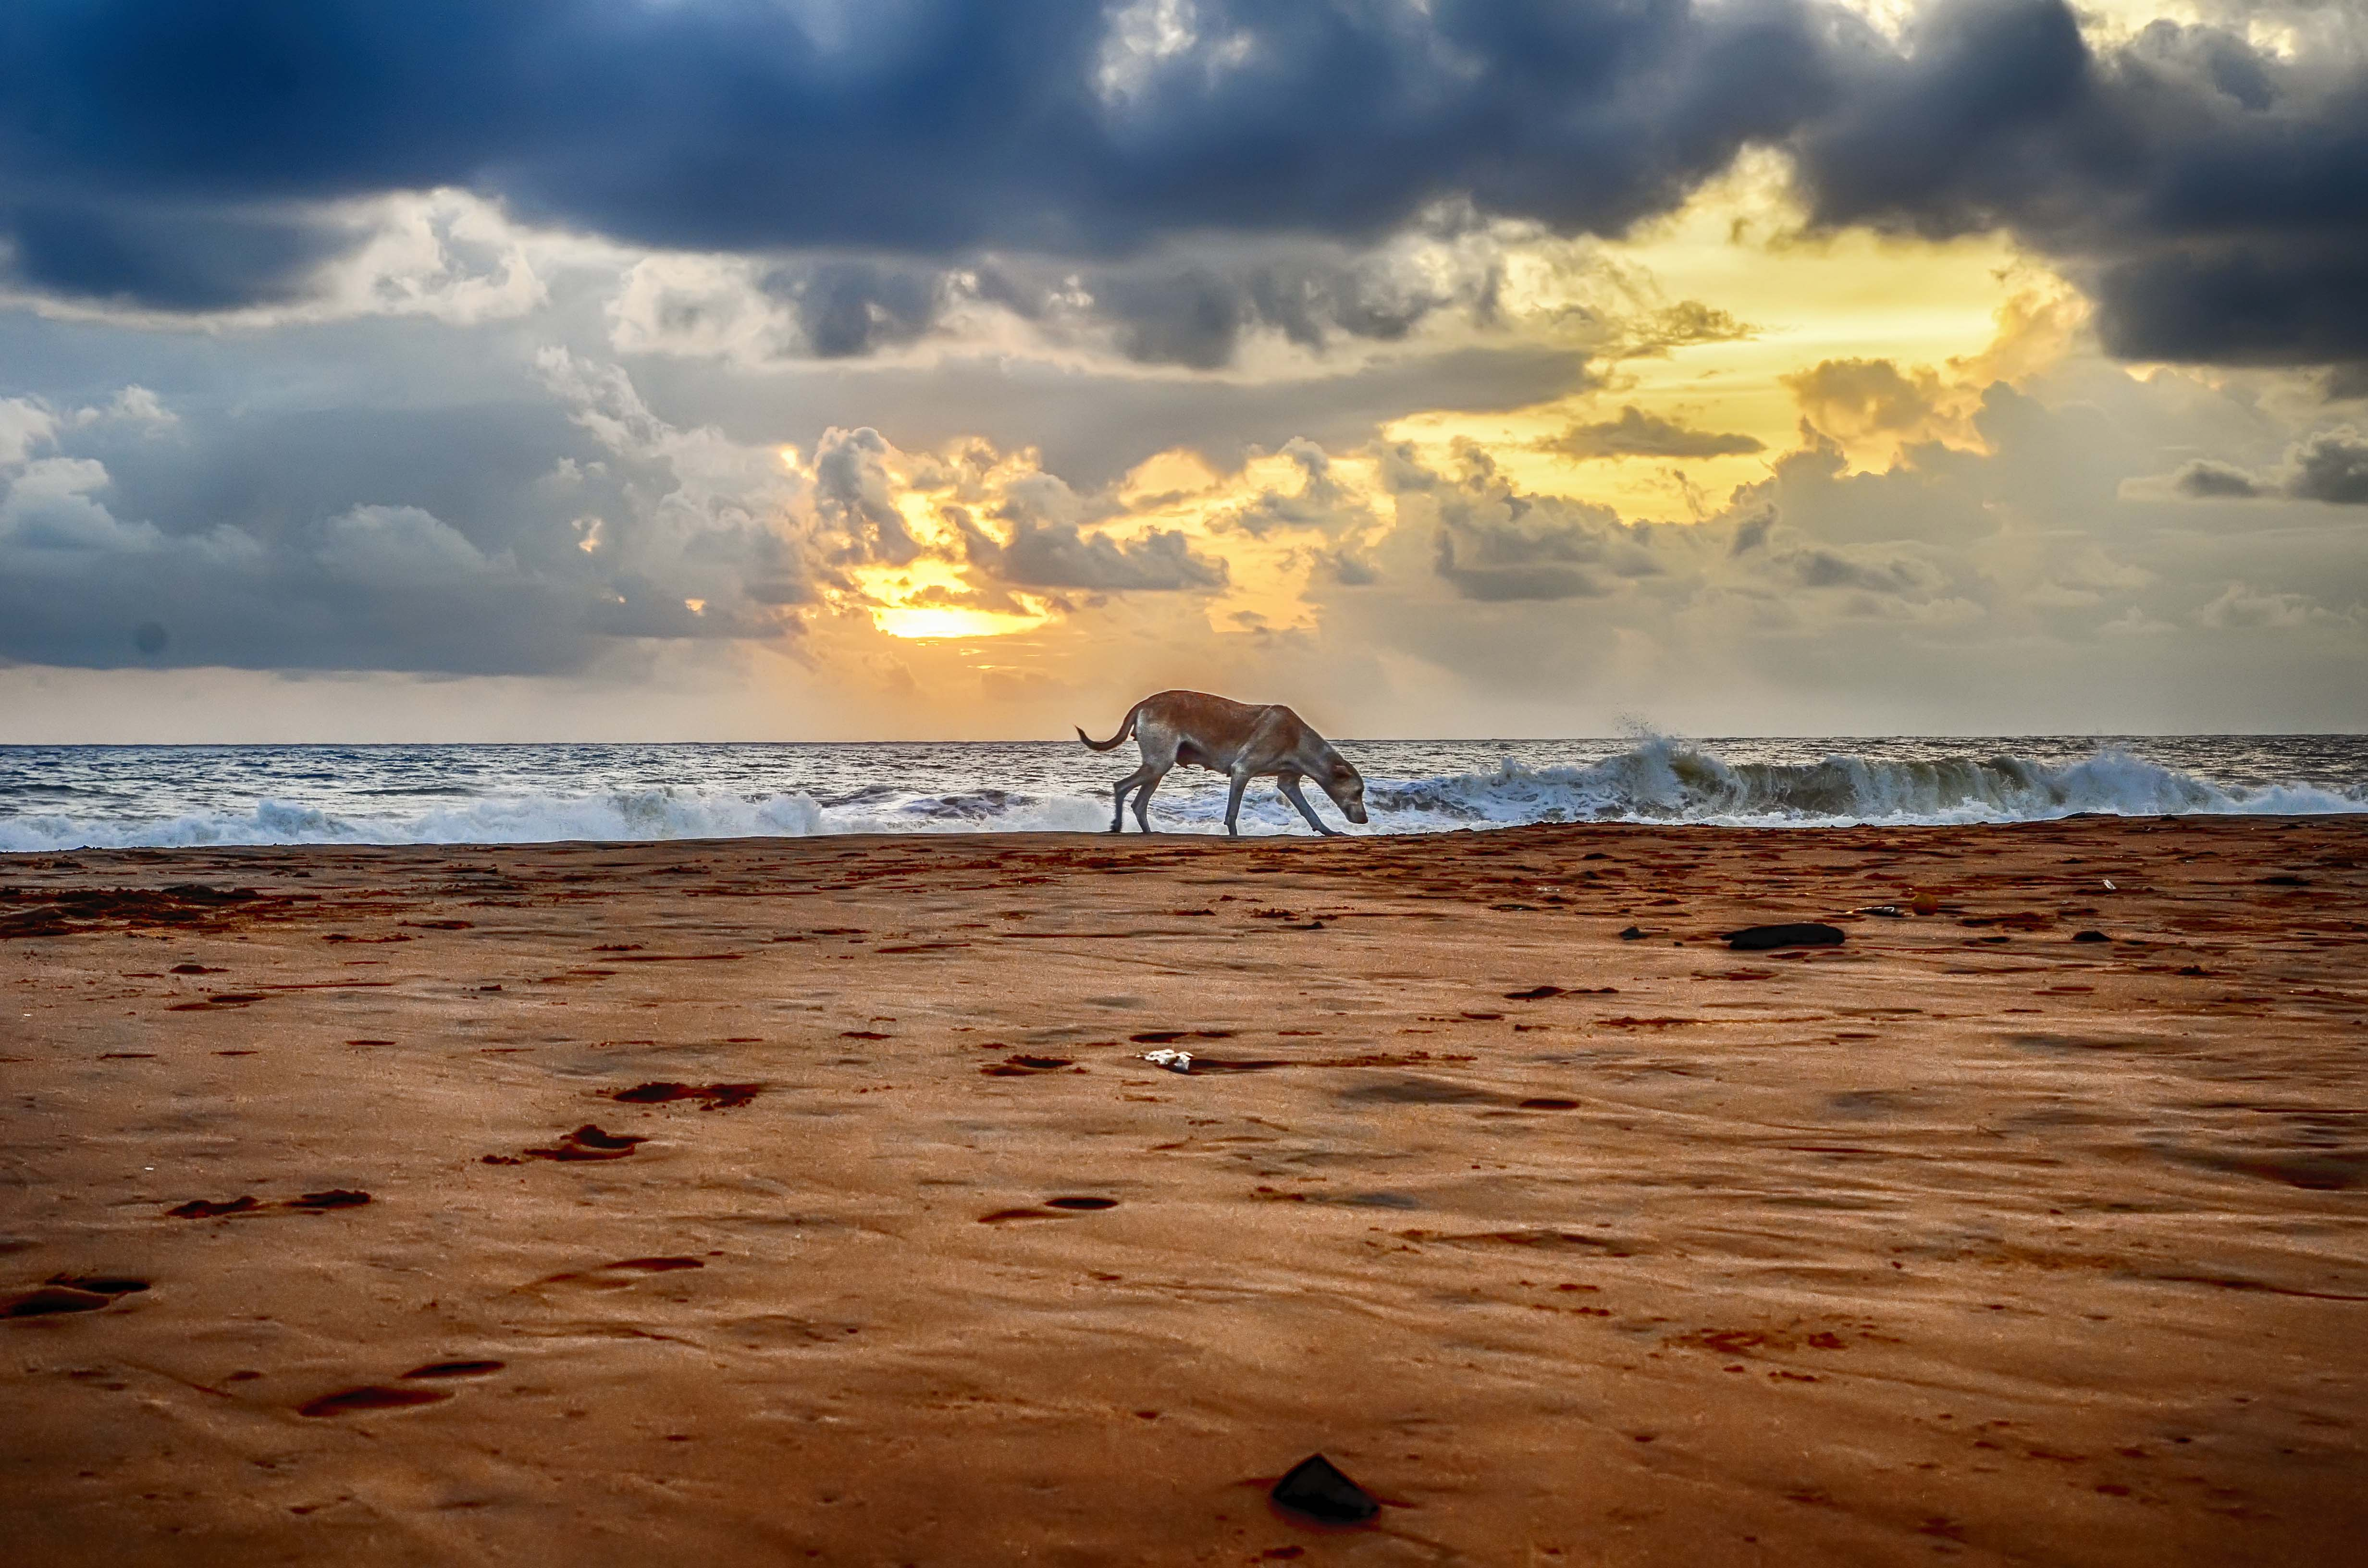 A cloudy sunset with alone dog, Alone, Animal, Cloudy, Dog, HQ Photo